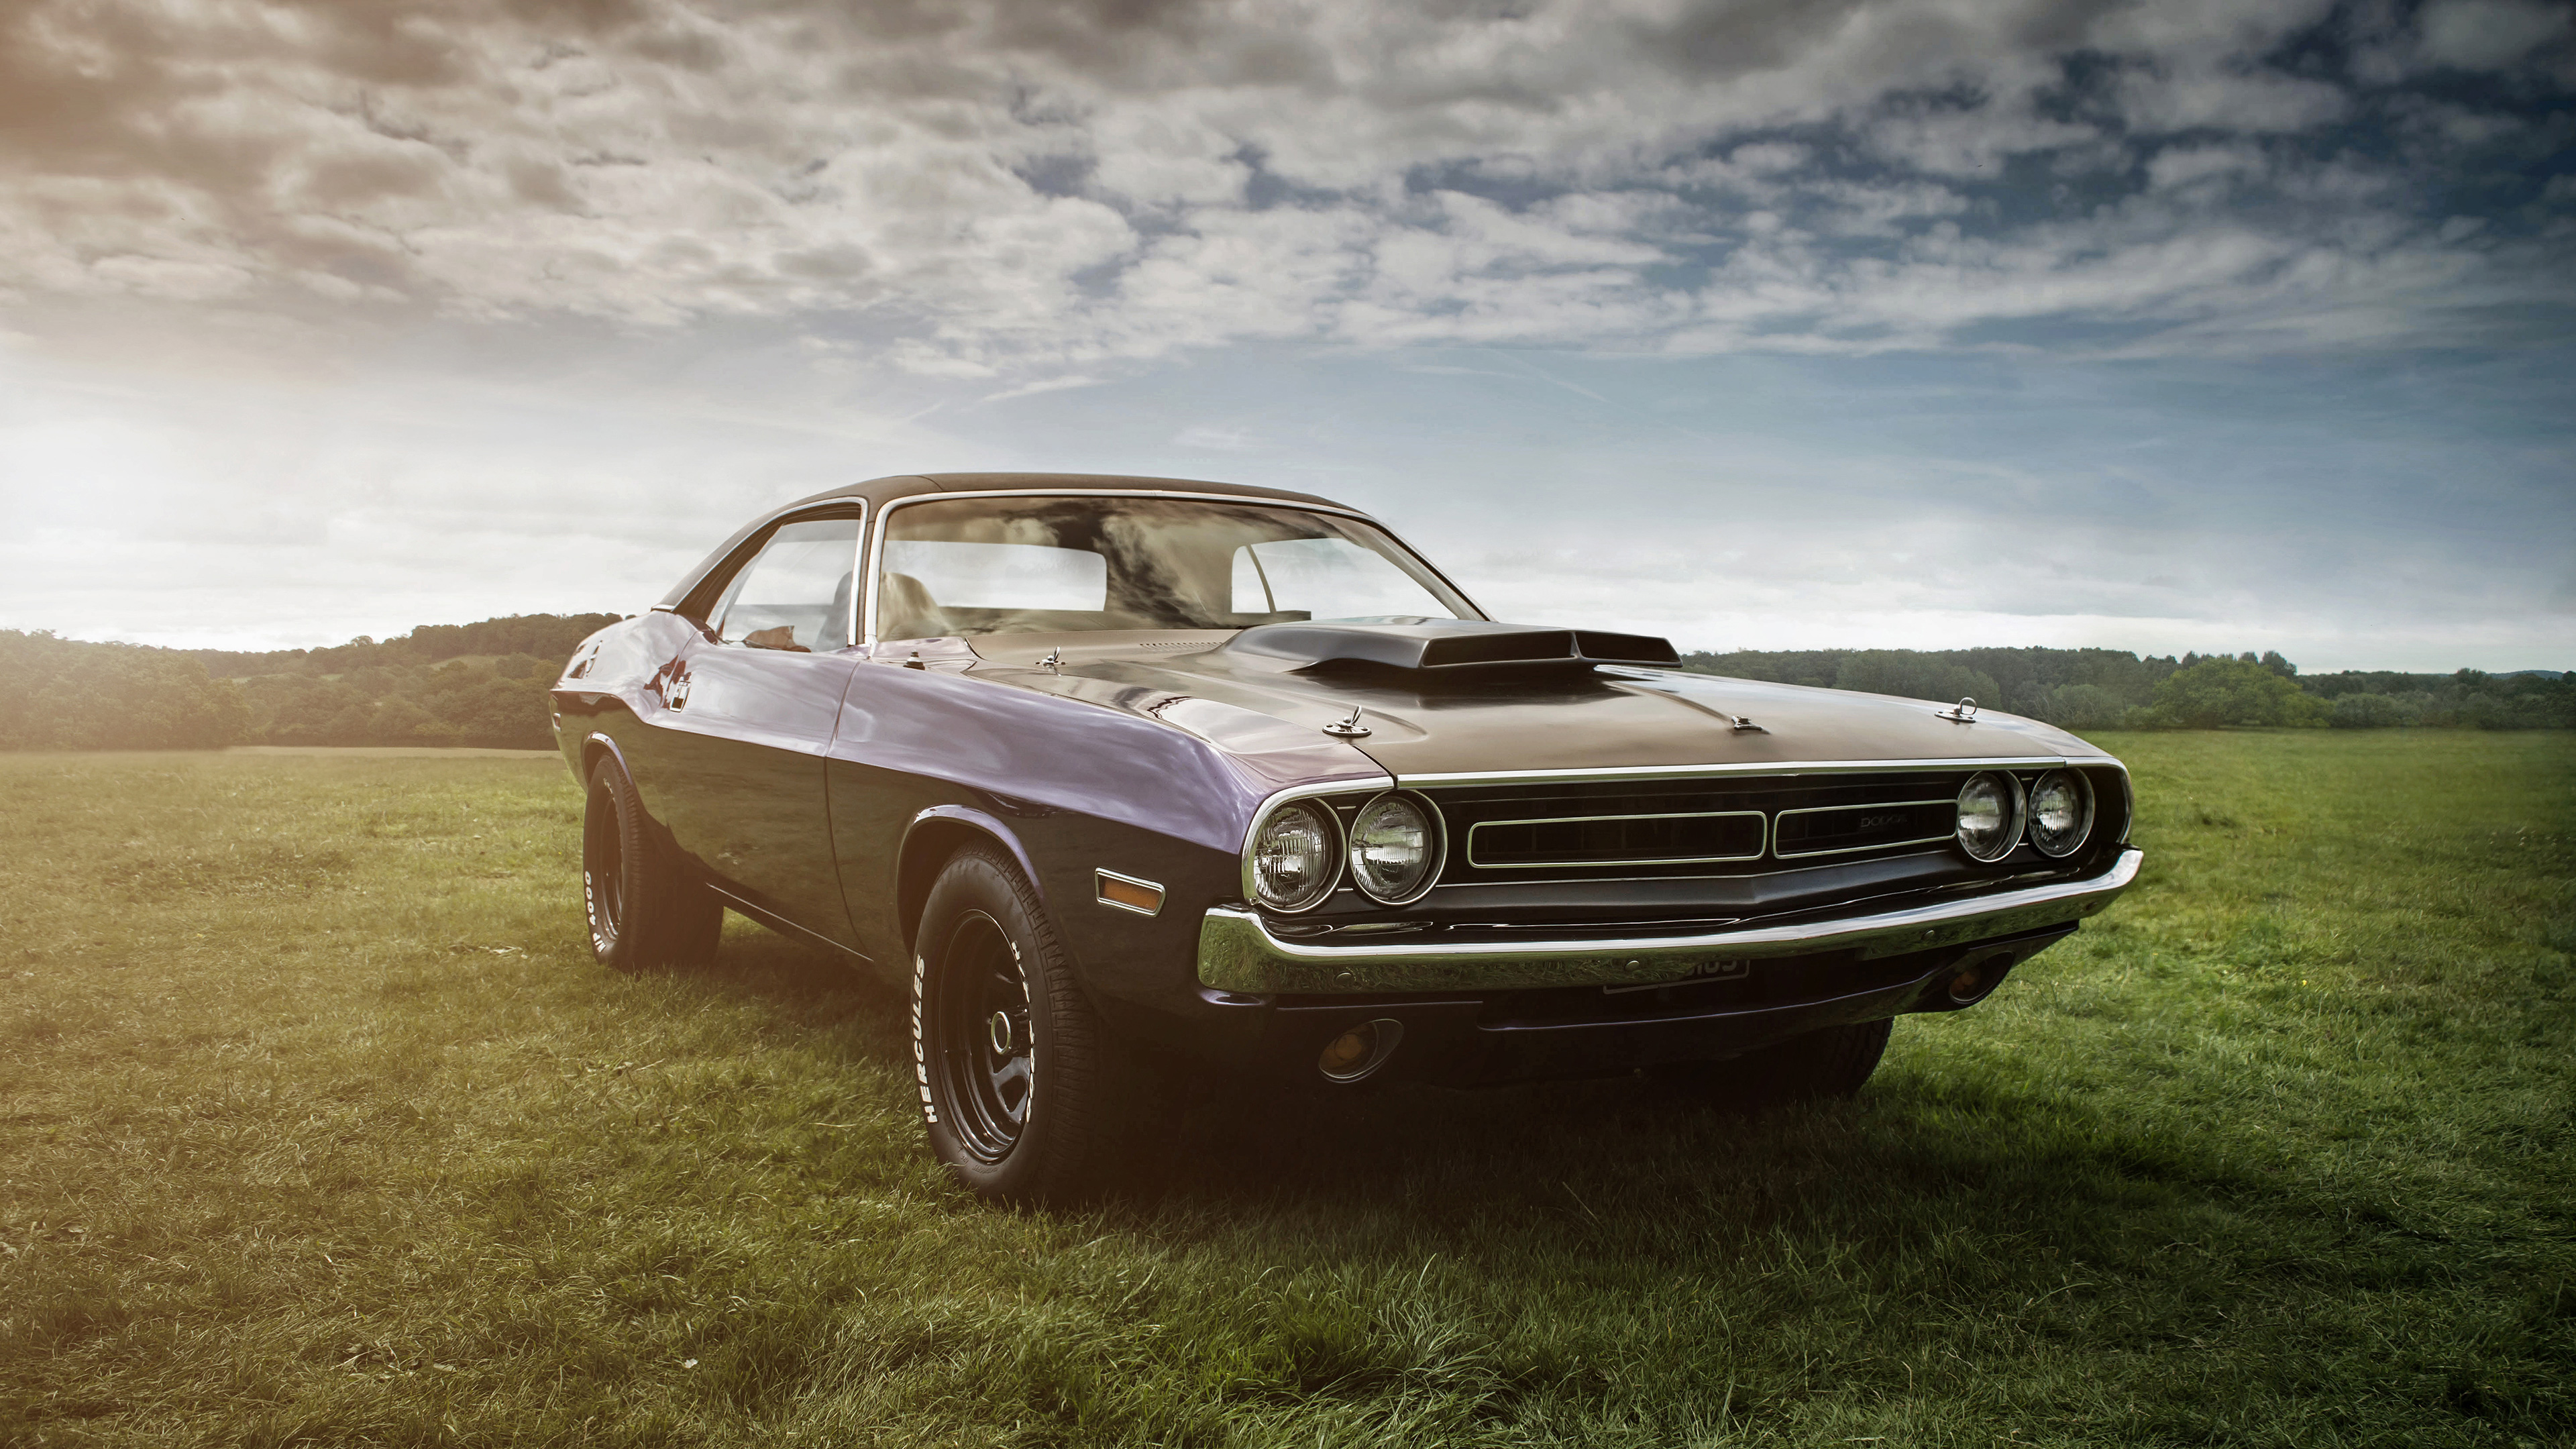 Dodge Challenger Hd 4k, HD Cars, 4k Wallpapers, Images